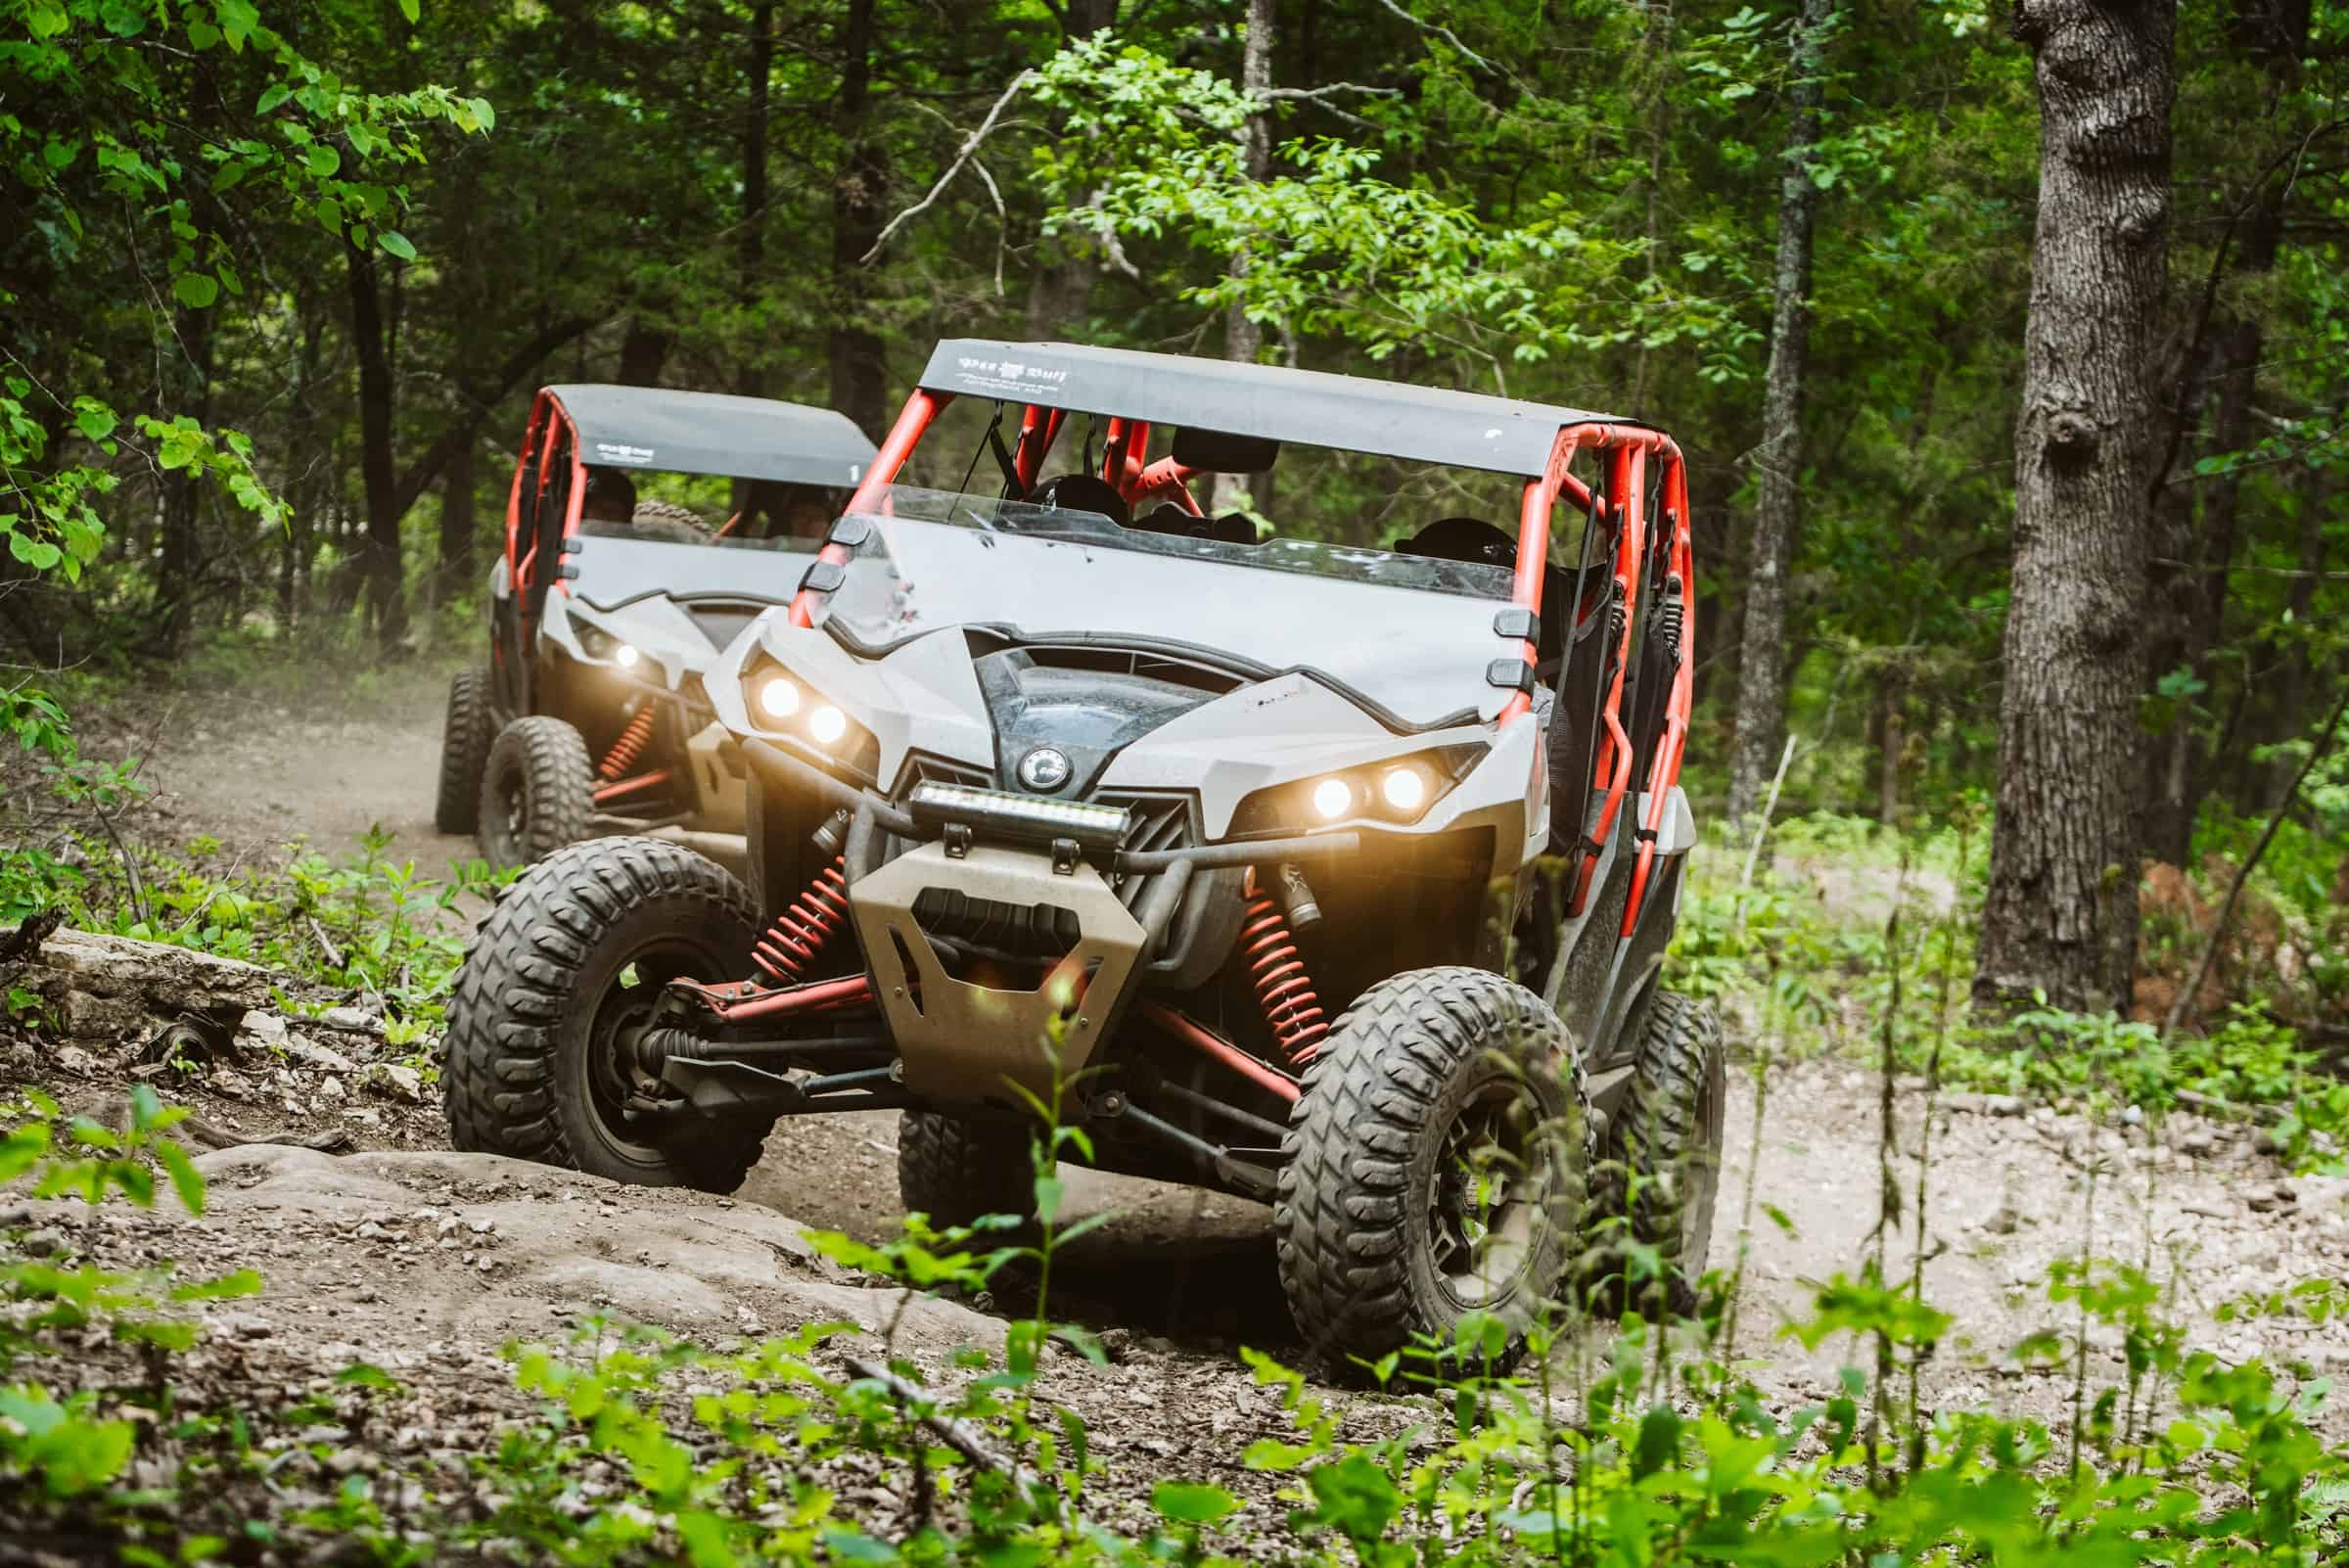 Two ATVs driving on gravel path through forest